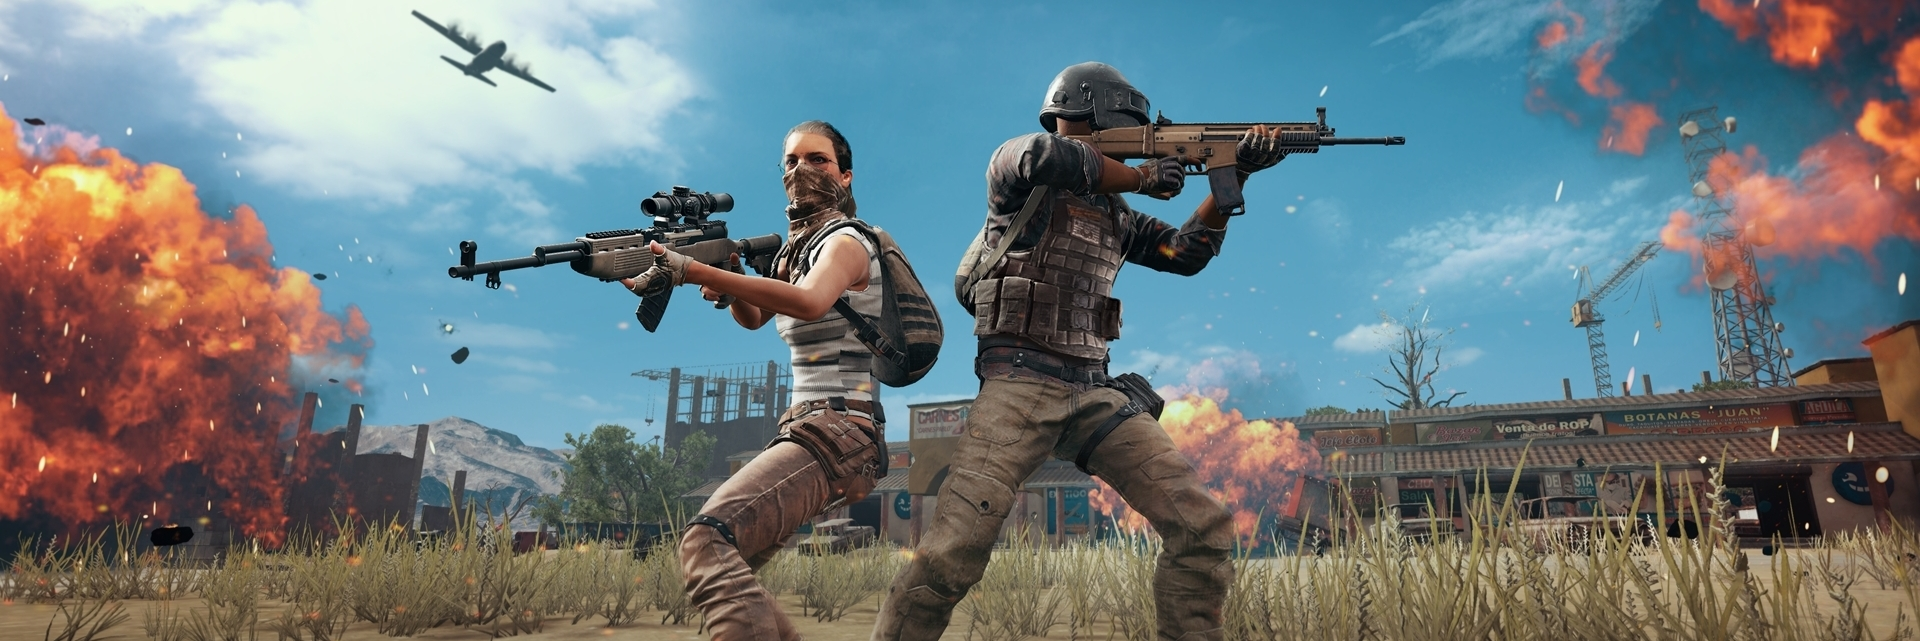 56 Pubg Stock Wallpapers: Fortnite Dominating PlayerUnknown's Battlegrounds In The